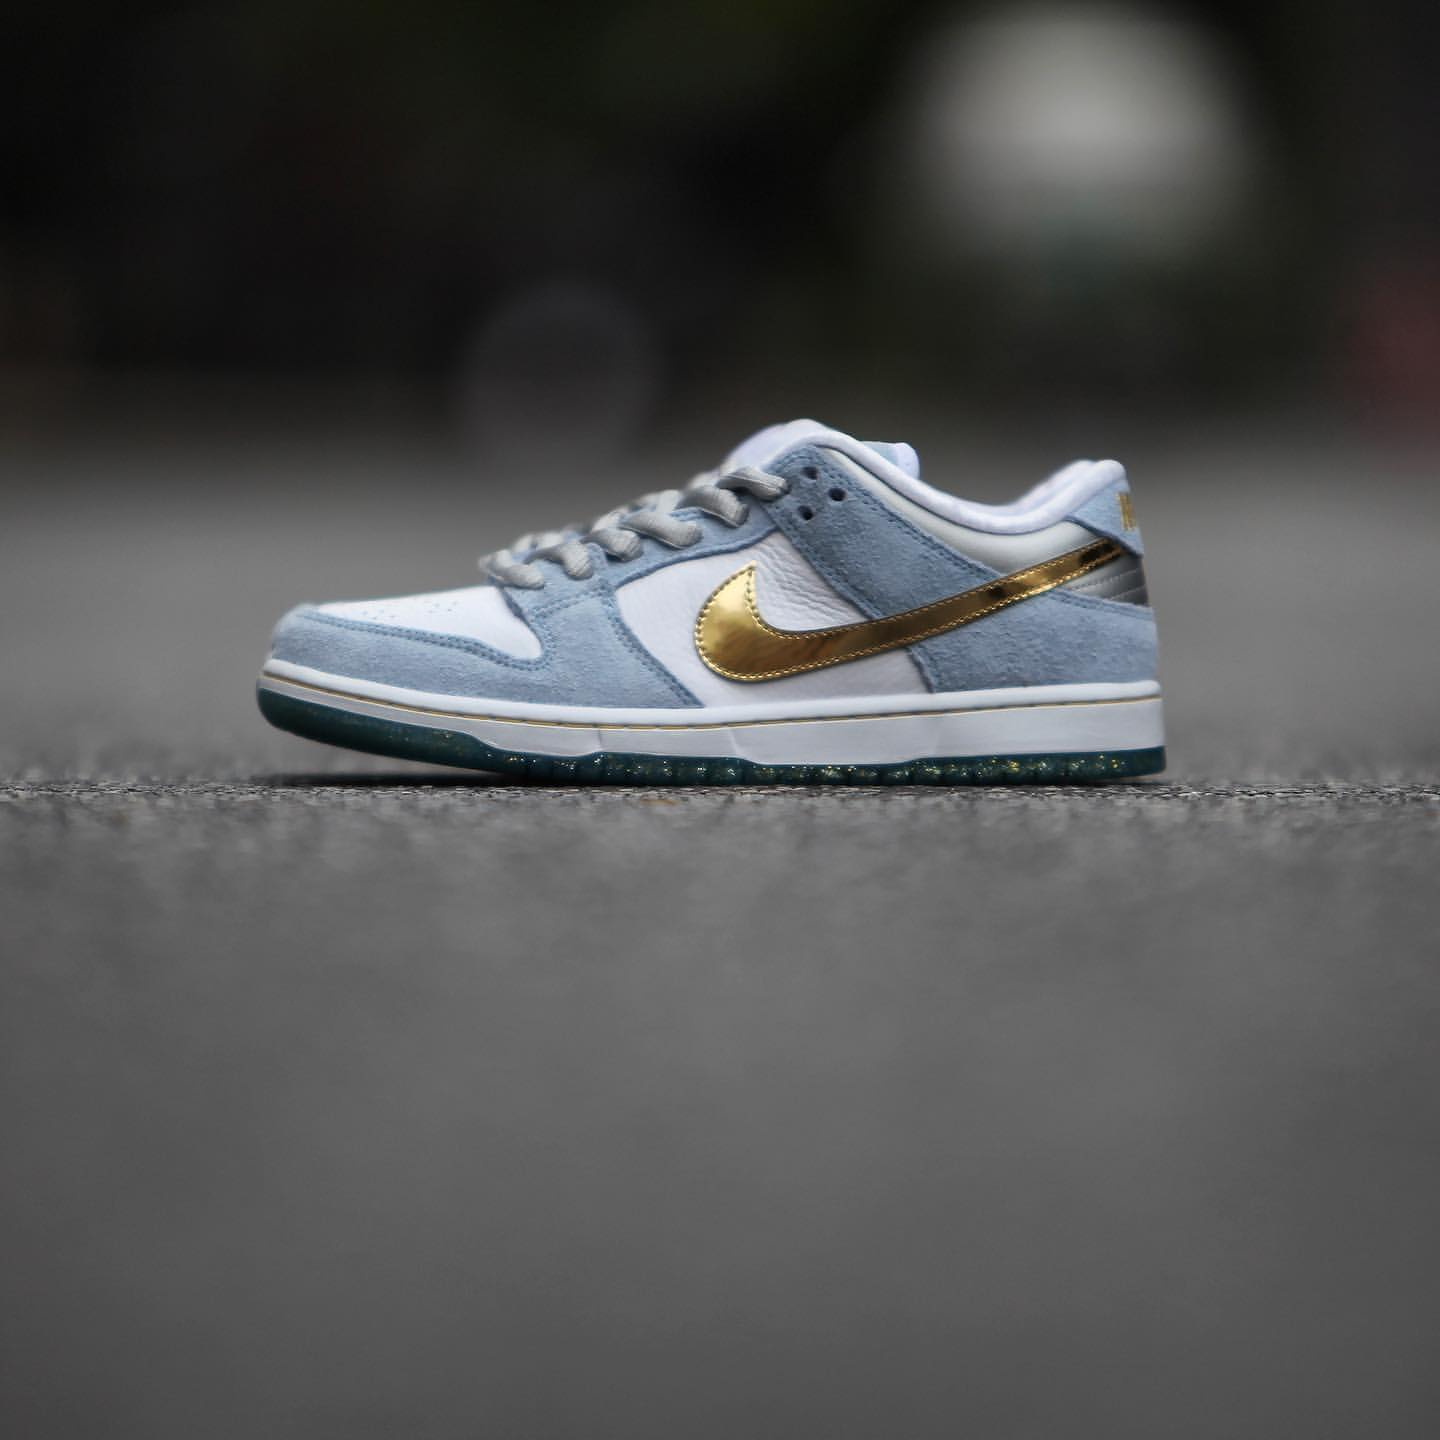 NIKE SB DUNK LOW ショーン クライヴァー Holiday Special DC9936-100